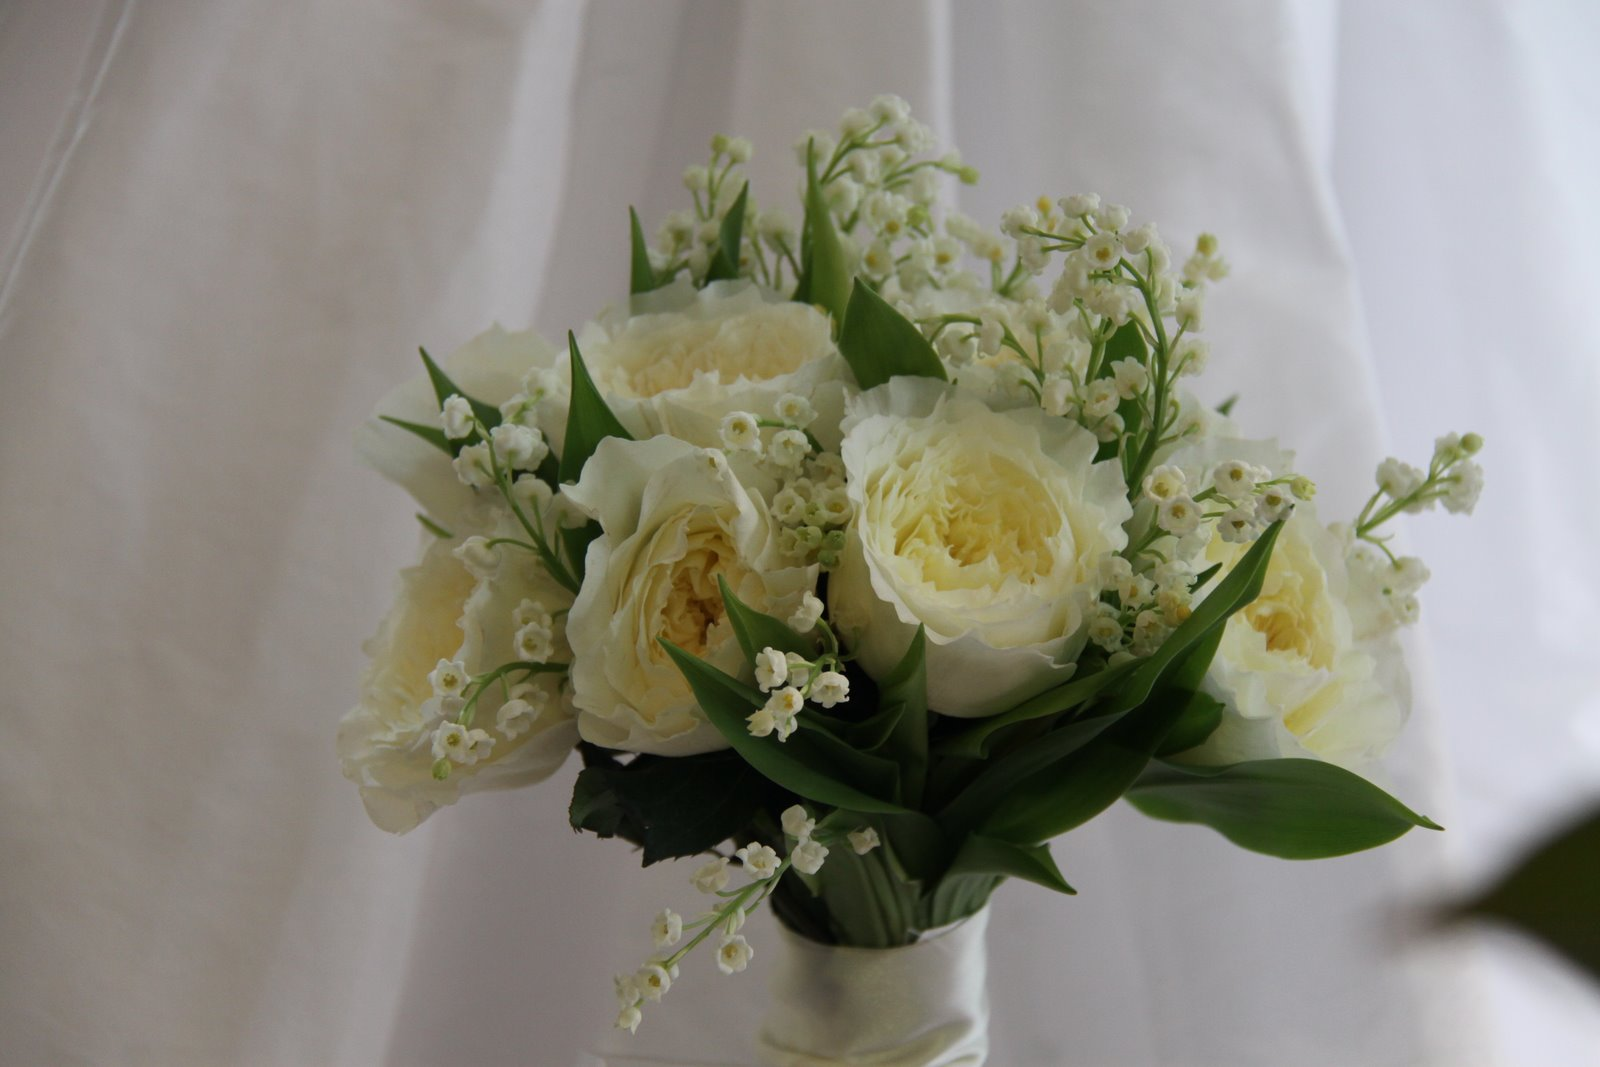 Lily Of The Valley Wedding Bouquet: The Flower Magician: Lily Of The Valley & Patience Rose